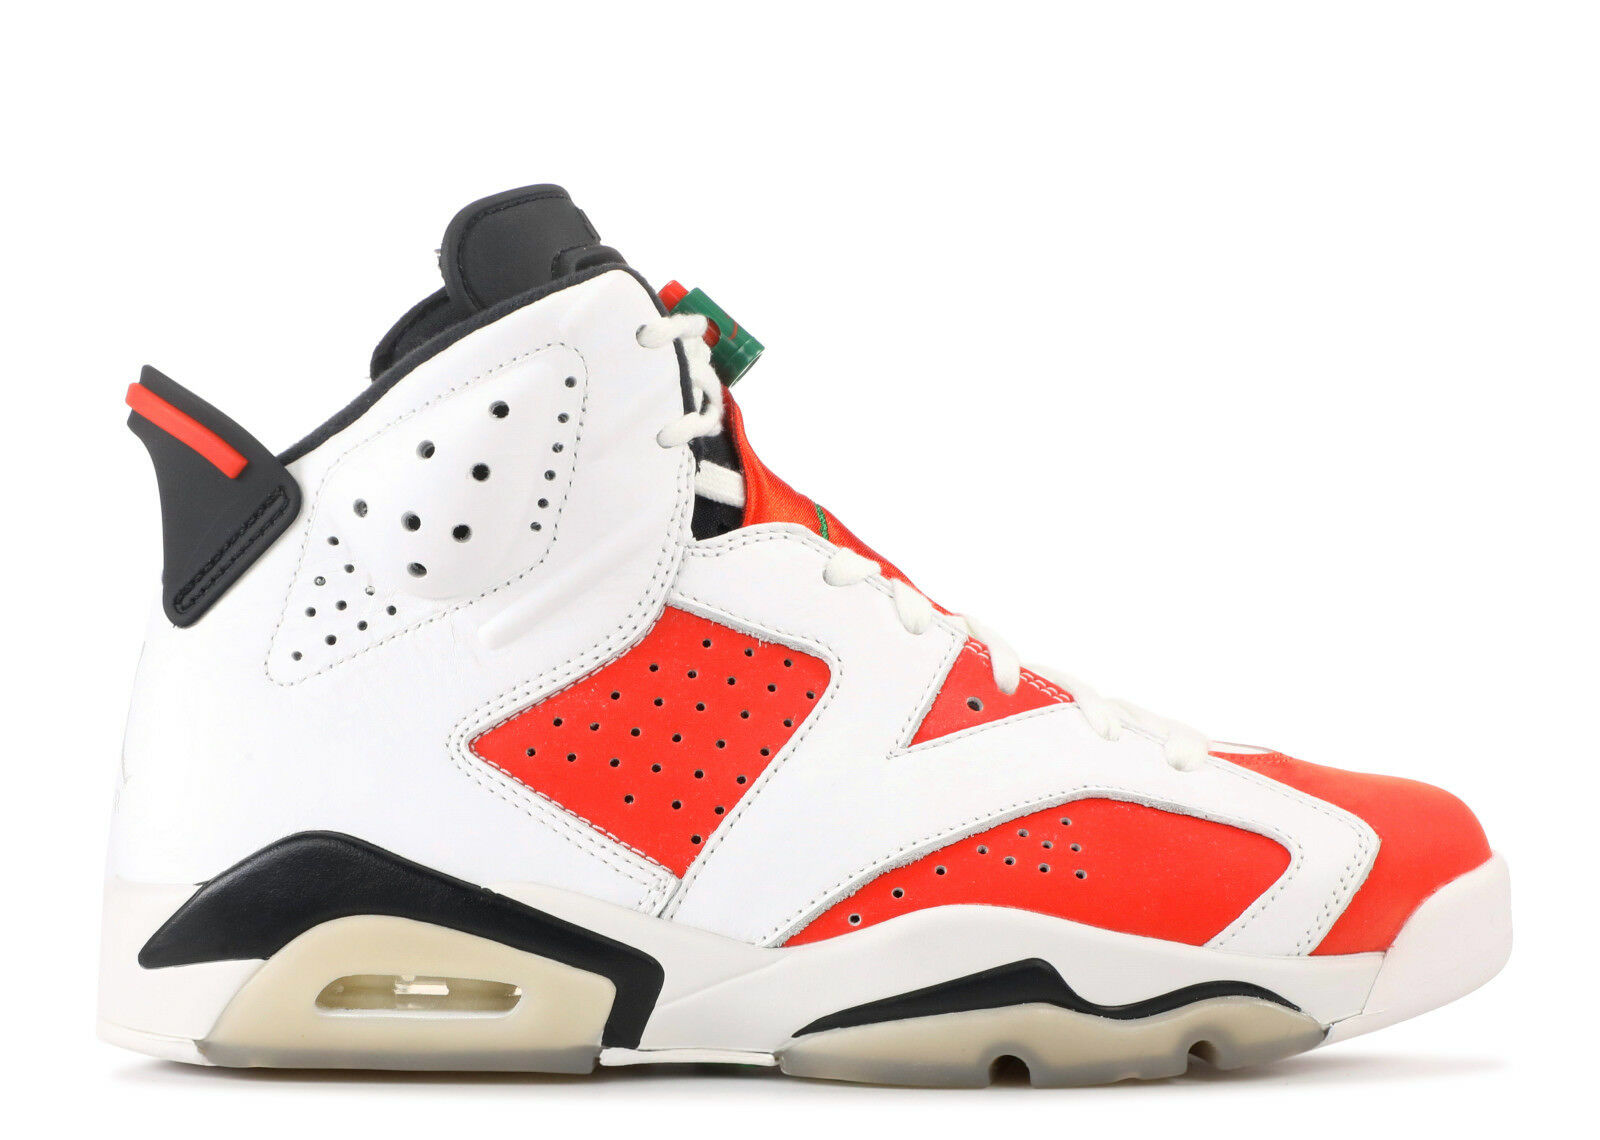 nike air jordan 6 vi gatorade white, größe 10,5 wie mike white, gatorade orange - schwarz.384664-145 0b08ad